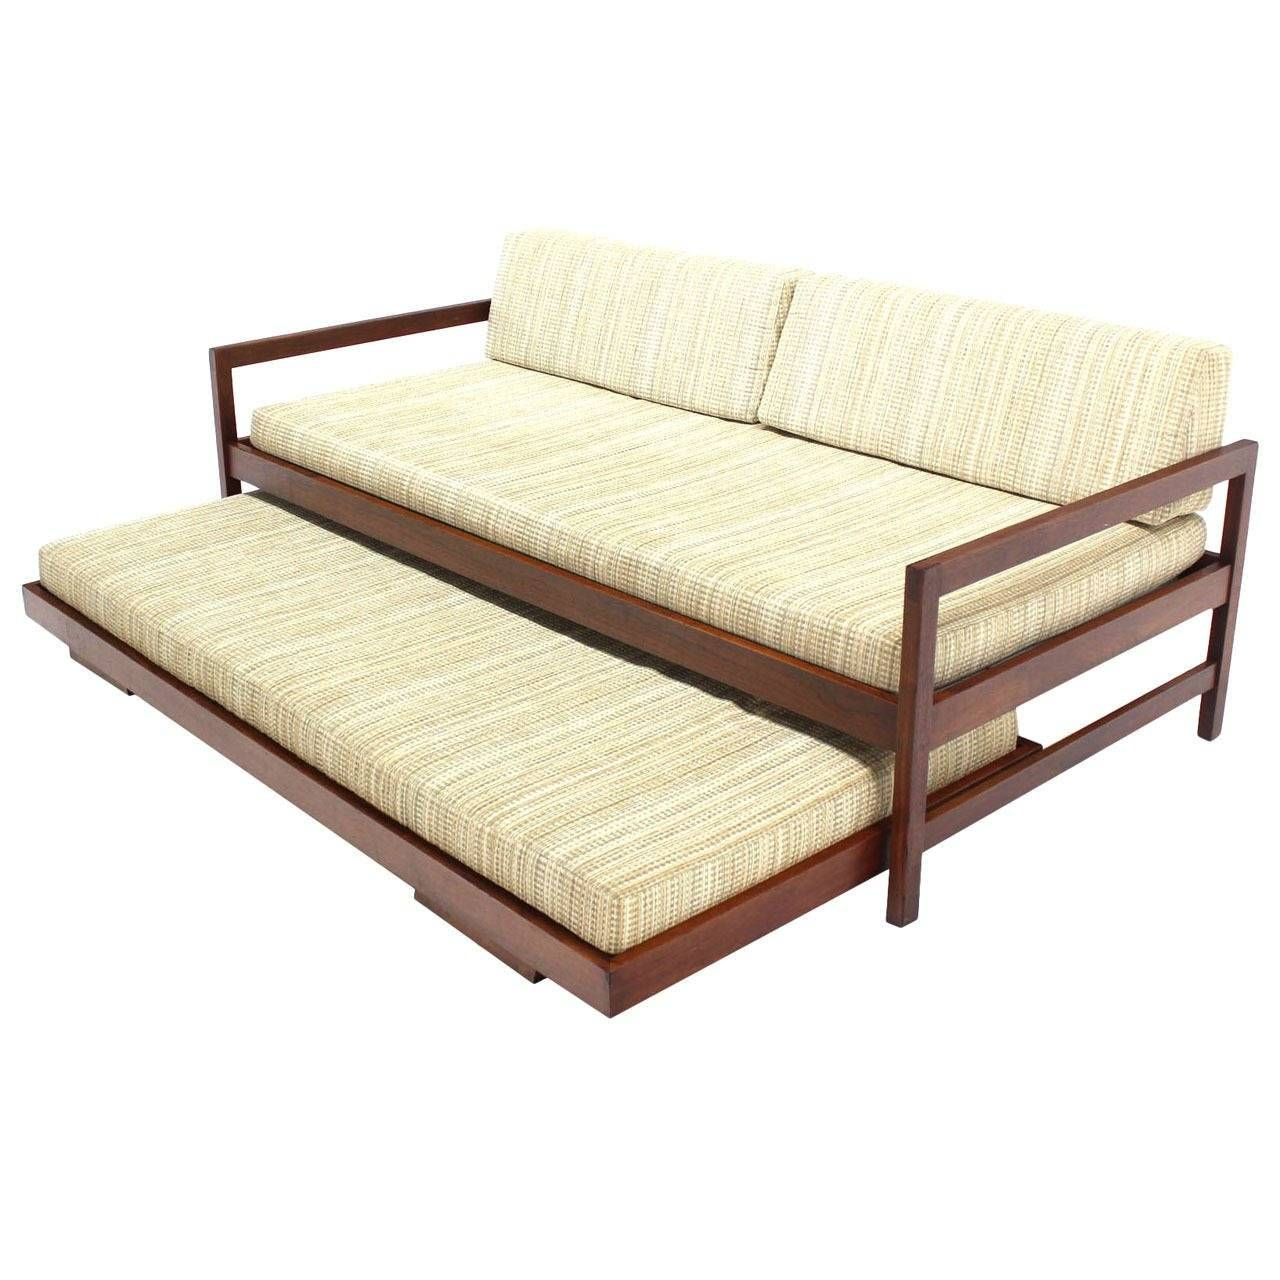 Solid Walnut Frame Mid Century Modern Trundle, Pull Out Daybed At For Sofas Daybed With Trundle (View 12 of 15)